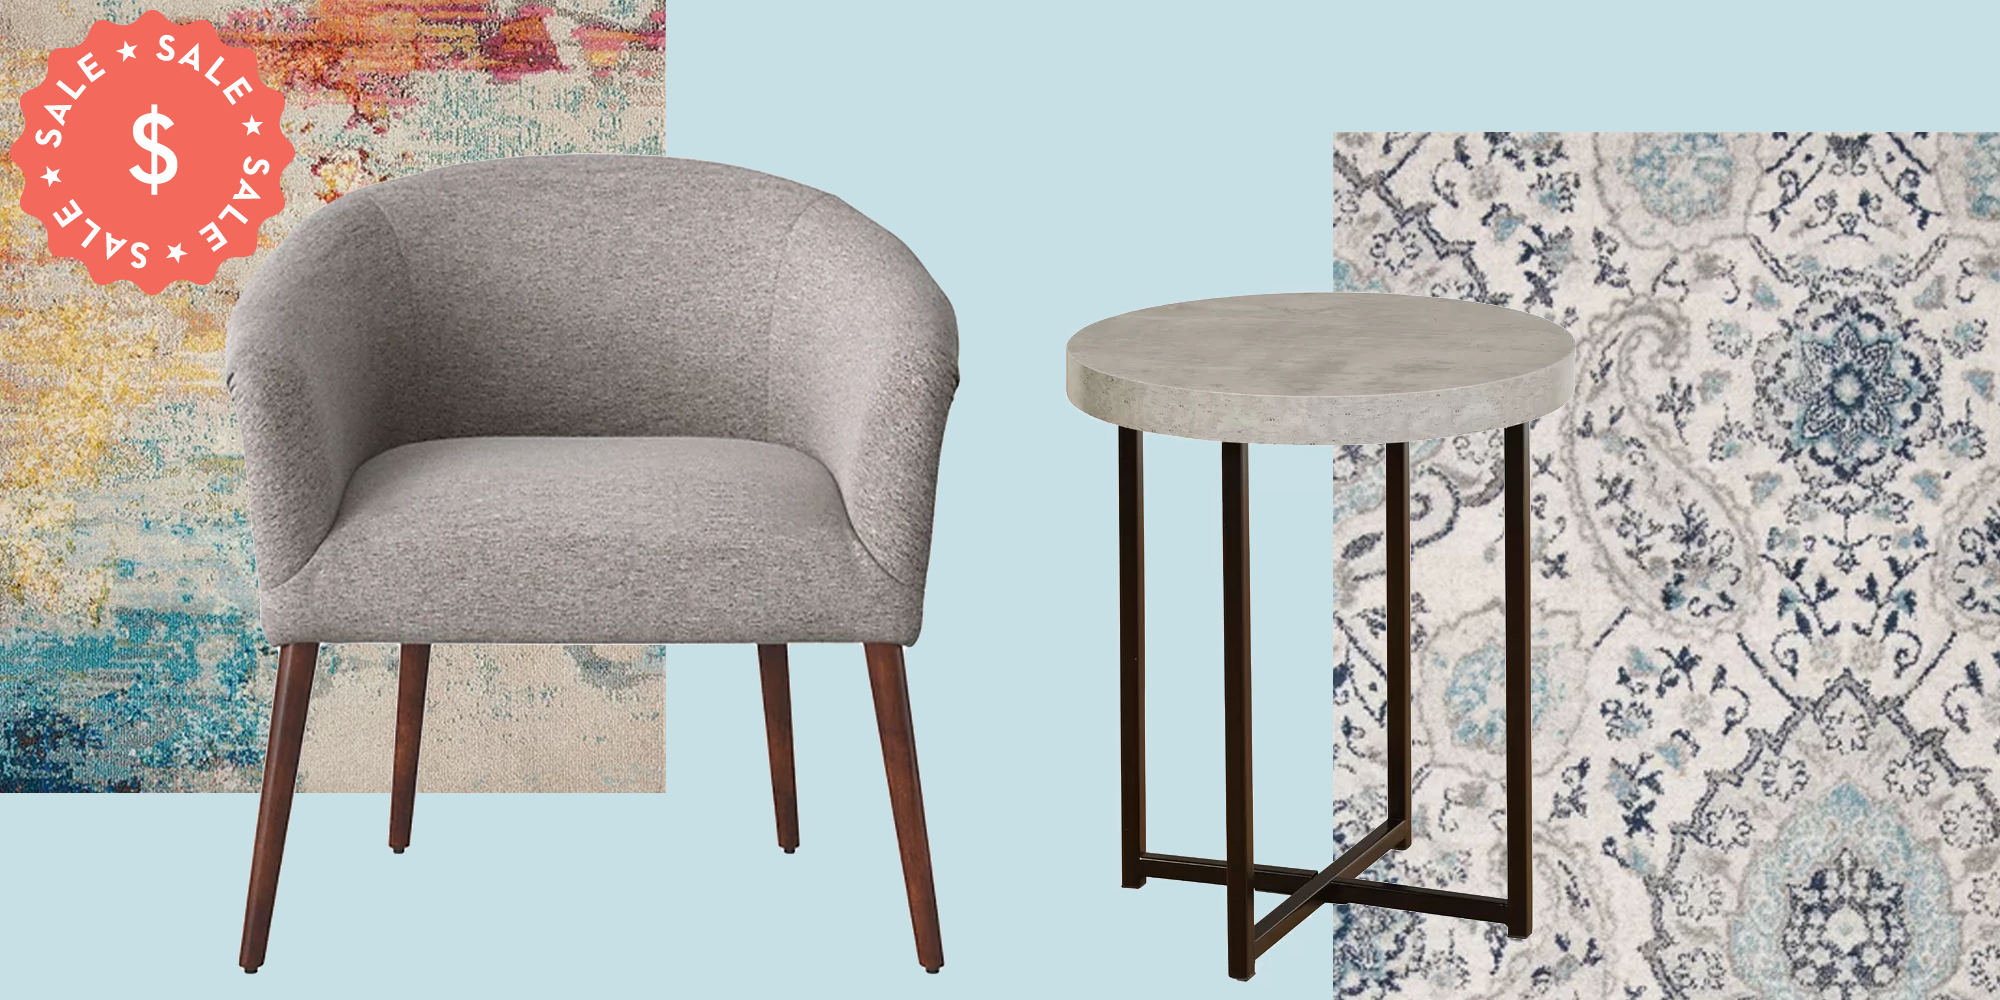 The best presidents day furniture sales 2019 ashley furniture target and more